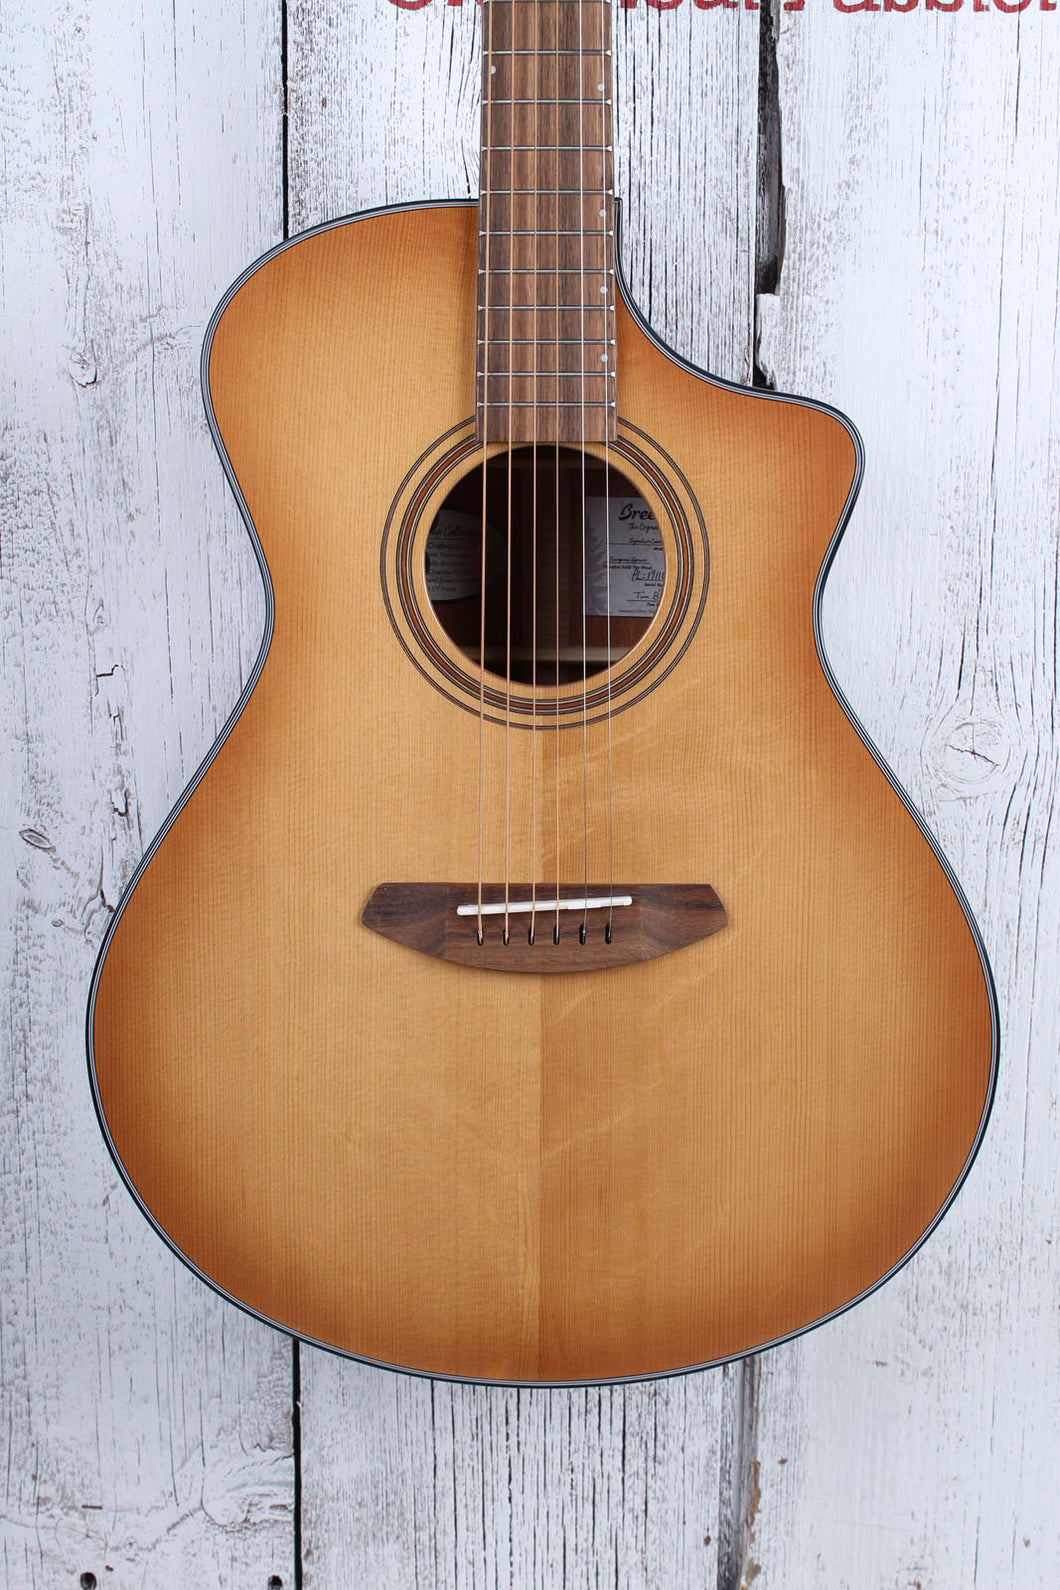 Breedlove Organic Signature Concert Copper CE Acoustic Electric Guitar w Gig Bag